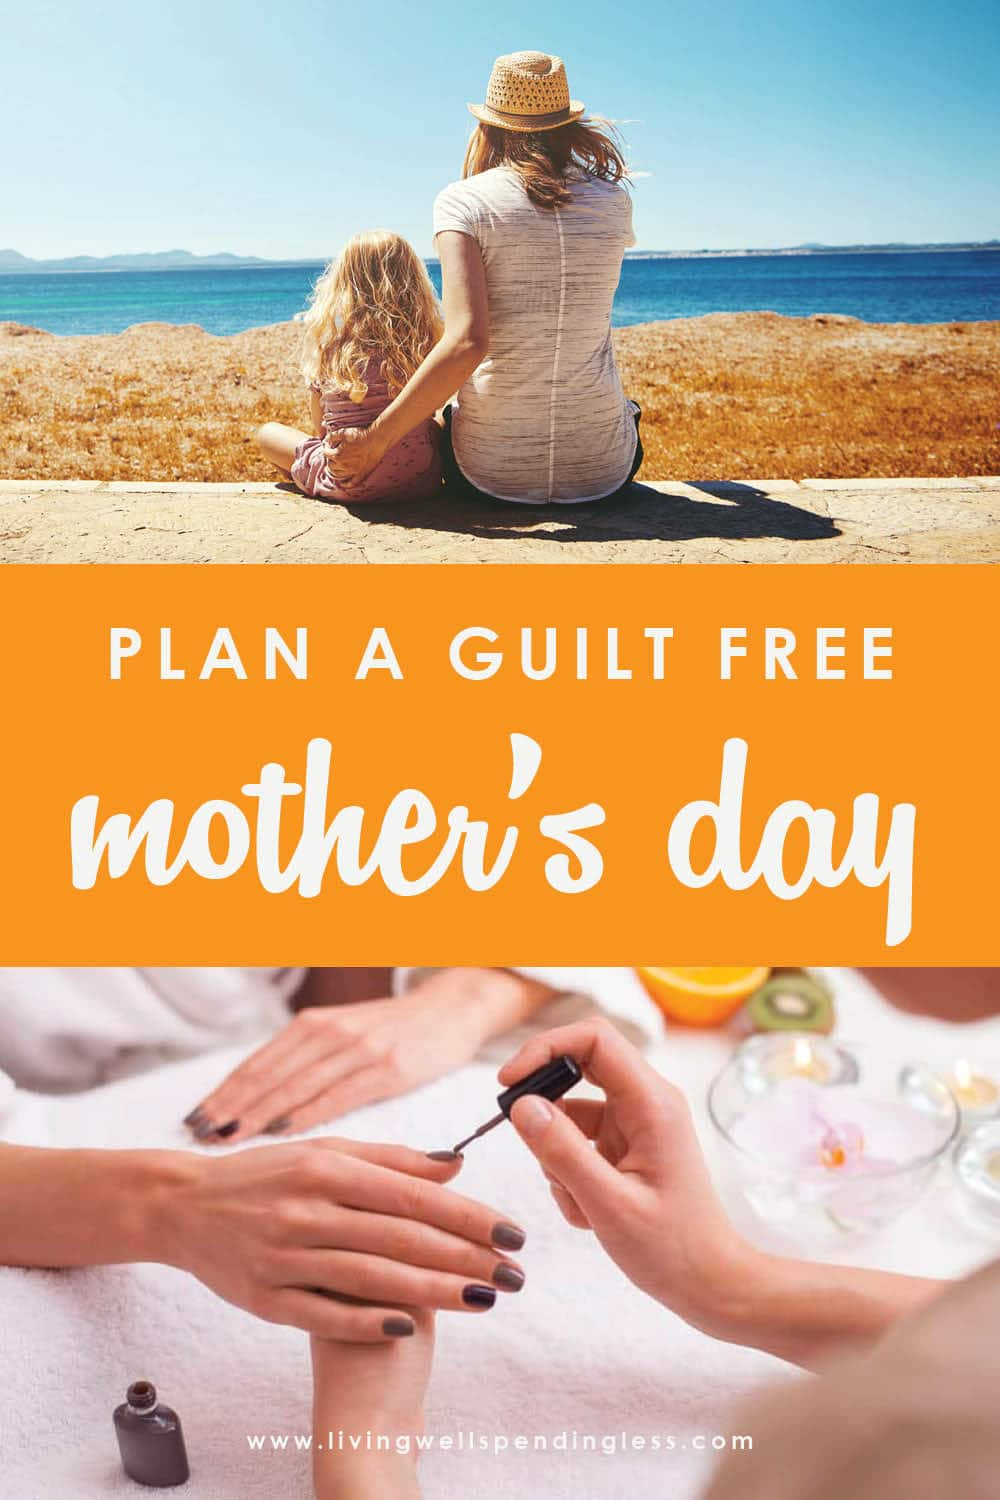 Mother's Day is YOUR day – and you deserve to be celebrated! So don't feel guilty for enjoying some self-love! And if you need some ideas on what to even do, don't miss these awesome tips for planning your own guilt-free Mother's Day! You deserve it. #mothersday2020 #mothersday #mothersdayideas #selfcare #momlife #wifelife #mompreneur #momsdayout